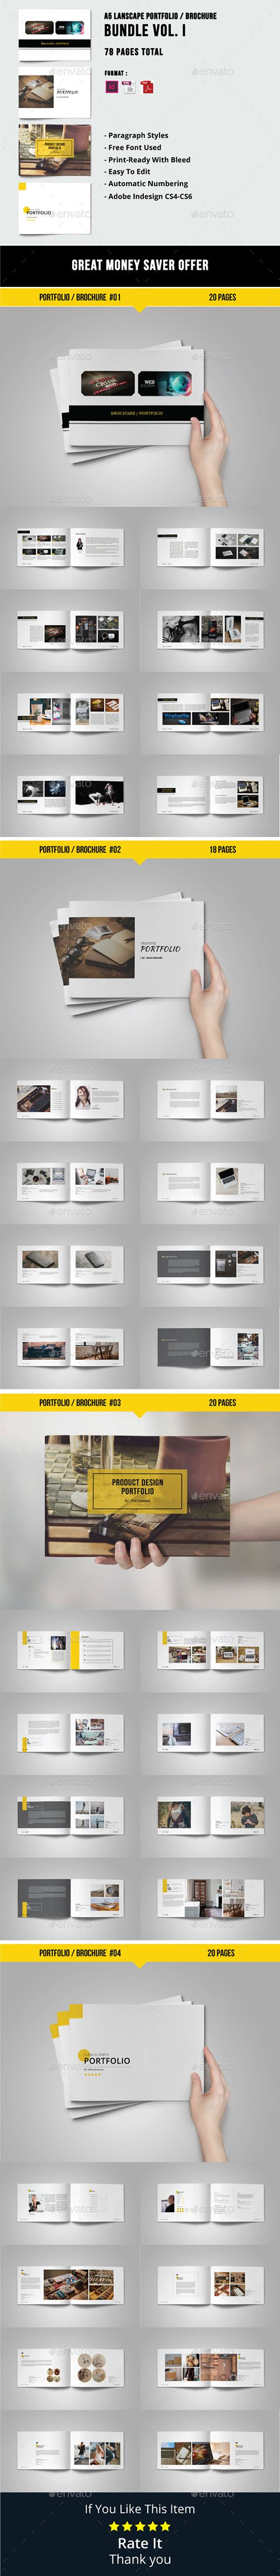 GR - A5 Lanscape Portfolio / Brochure Bundle